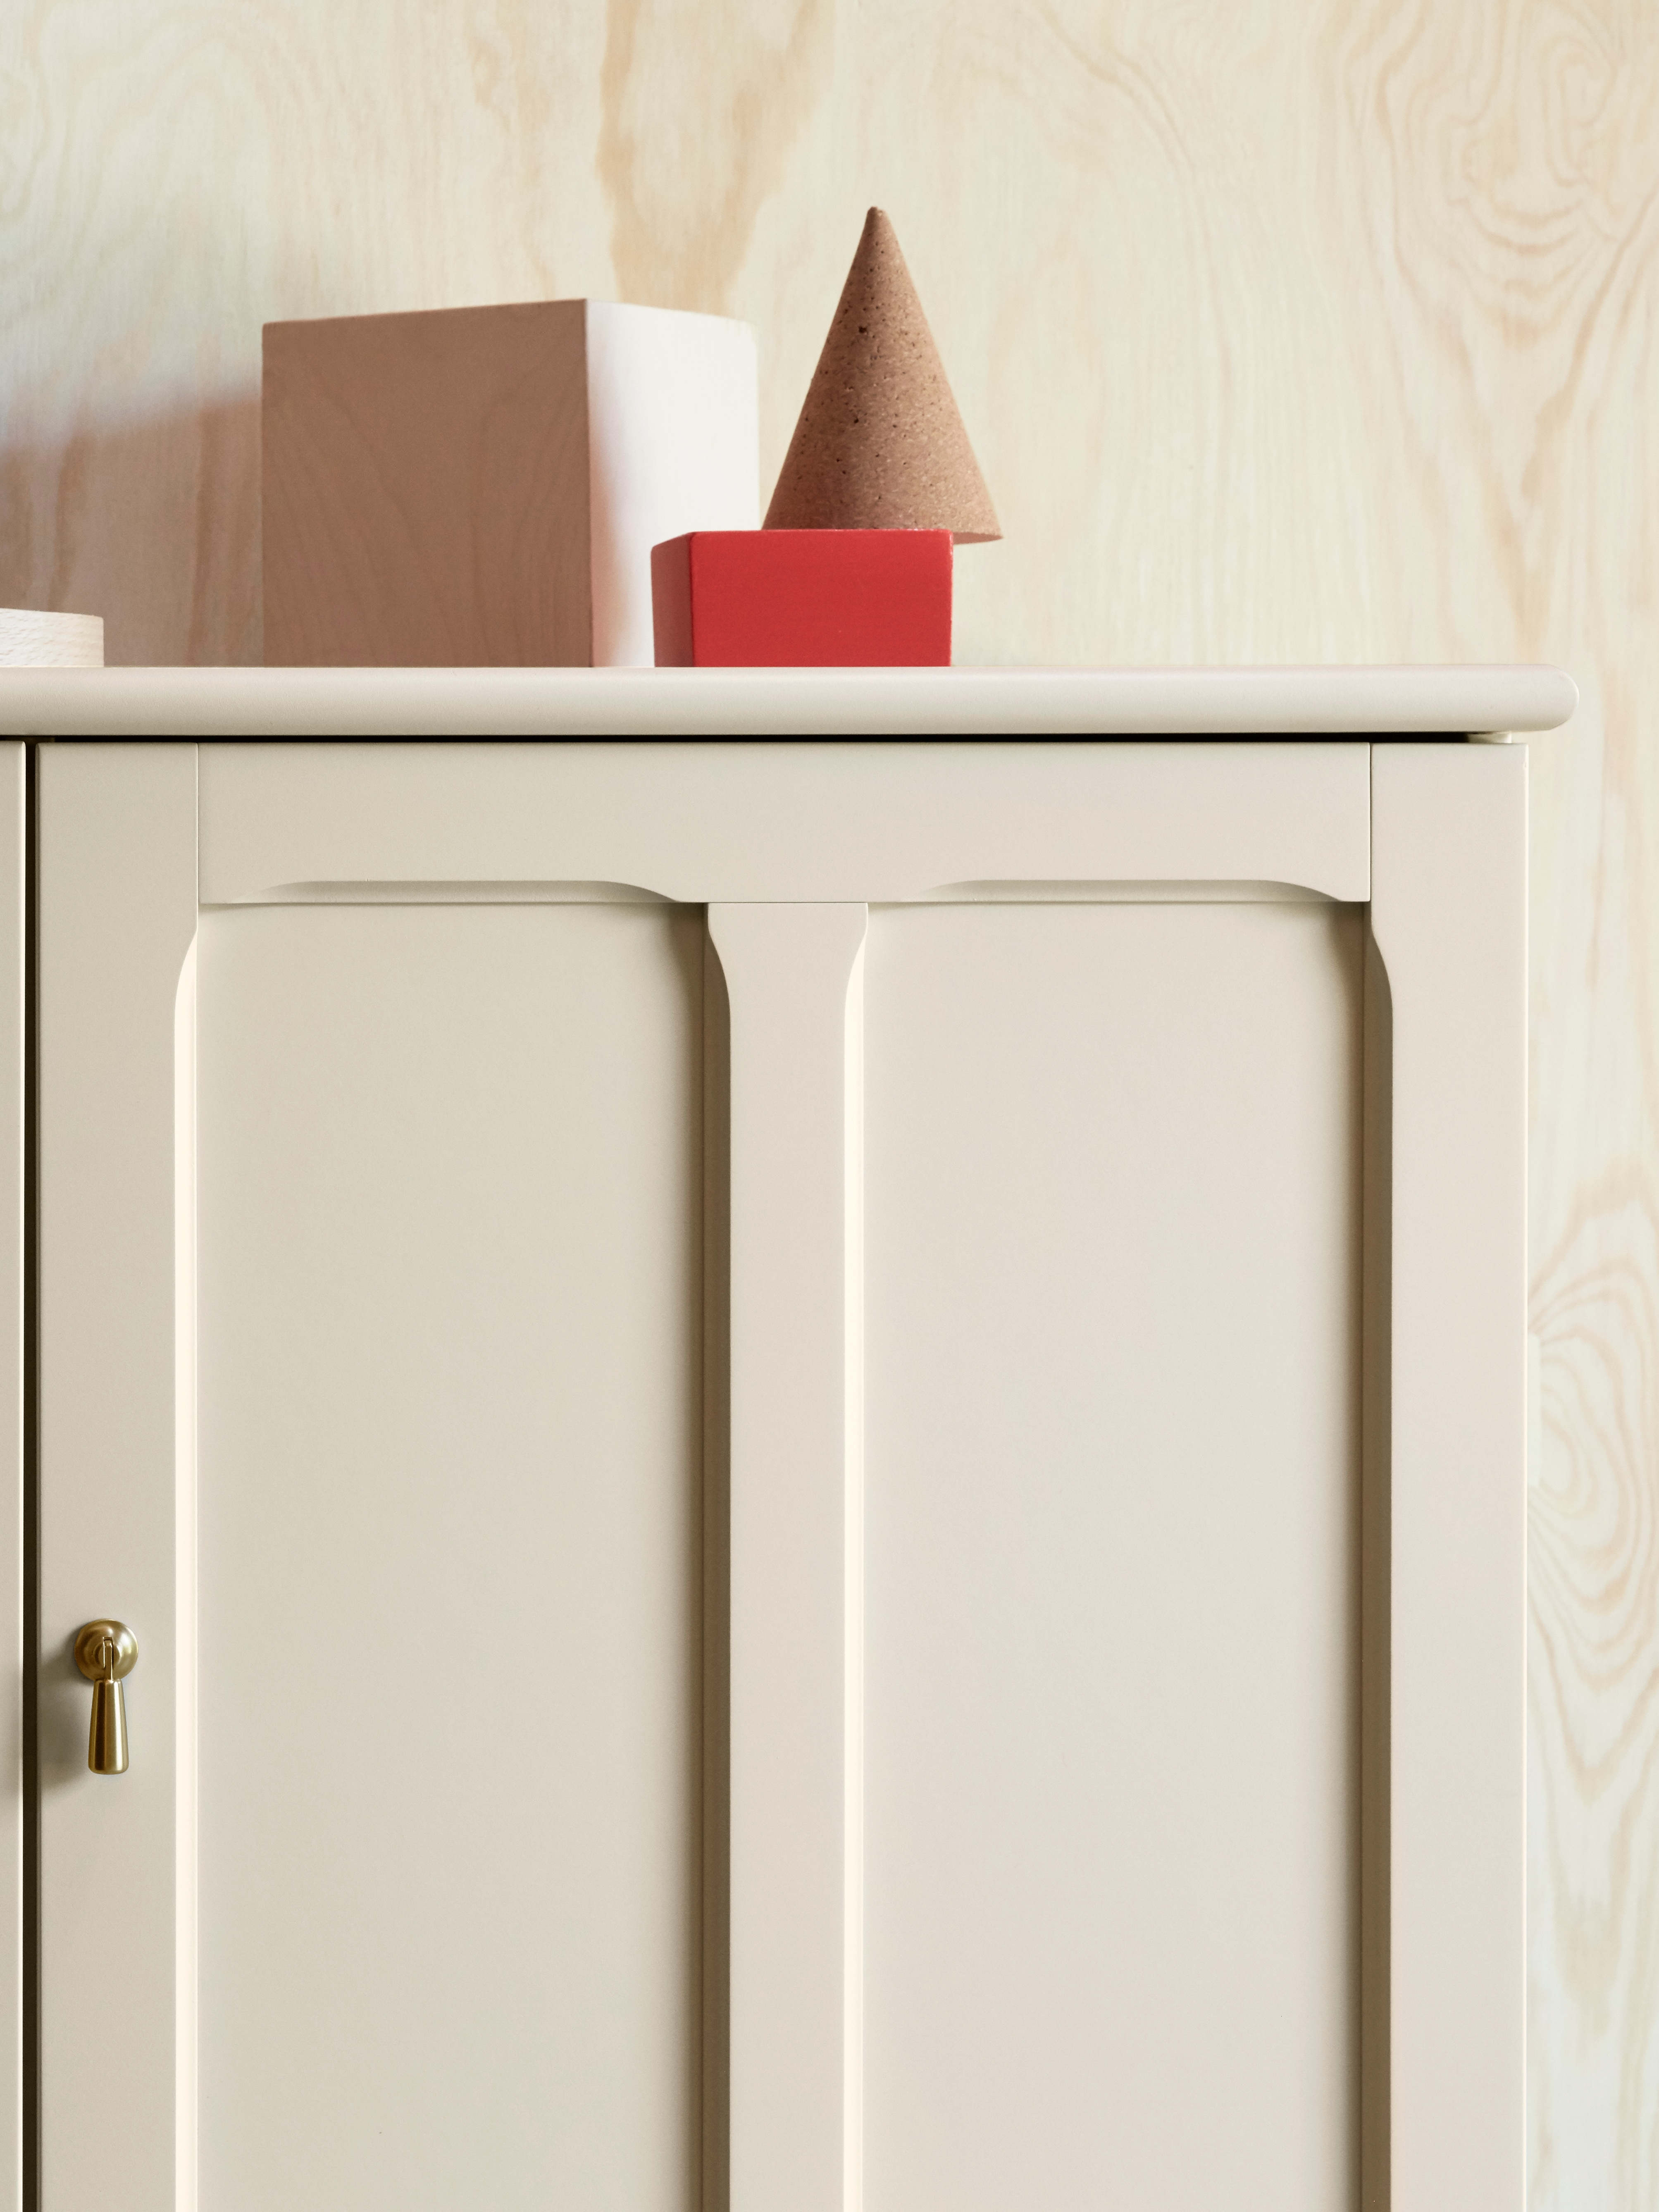 A close-up of the top right corner of a light beige LOMMARP cabinet with inset panels and champagne colour drop handles.